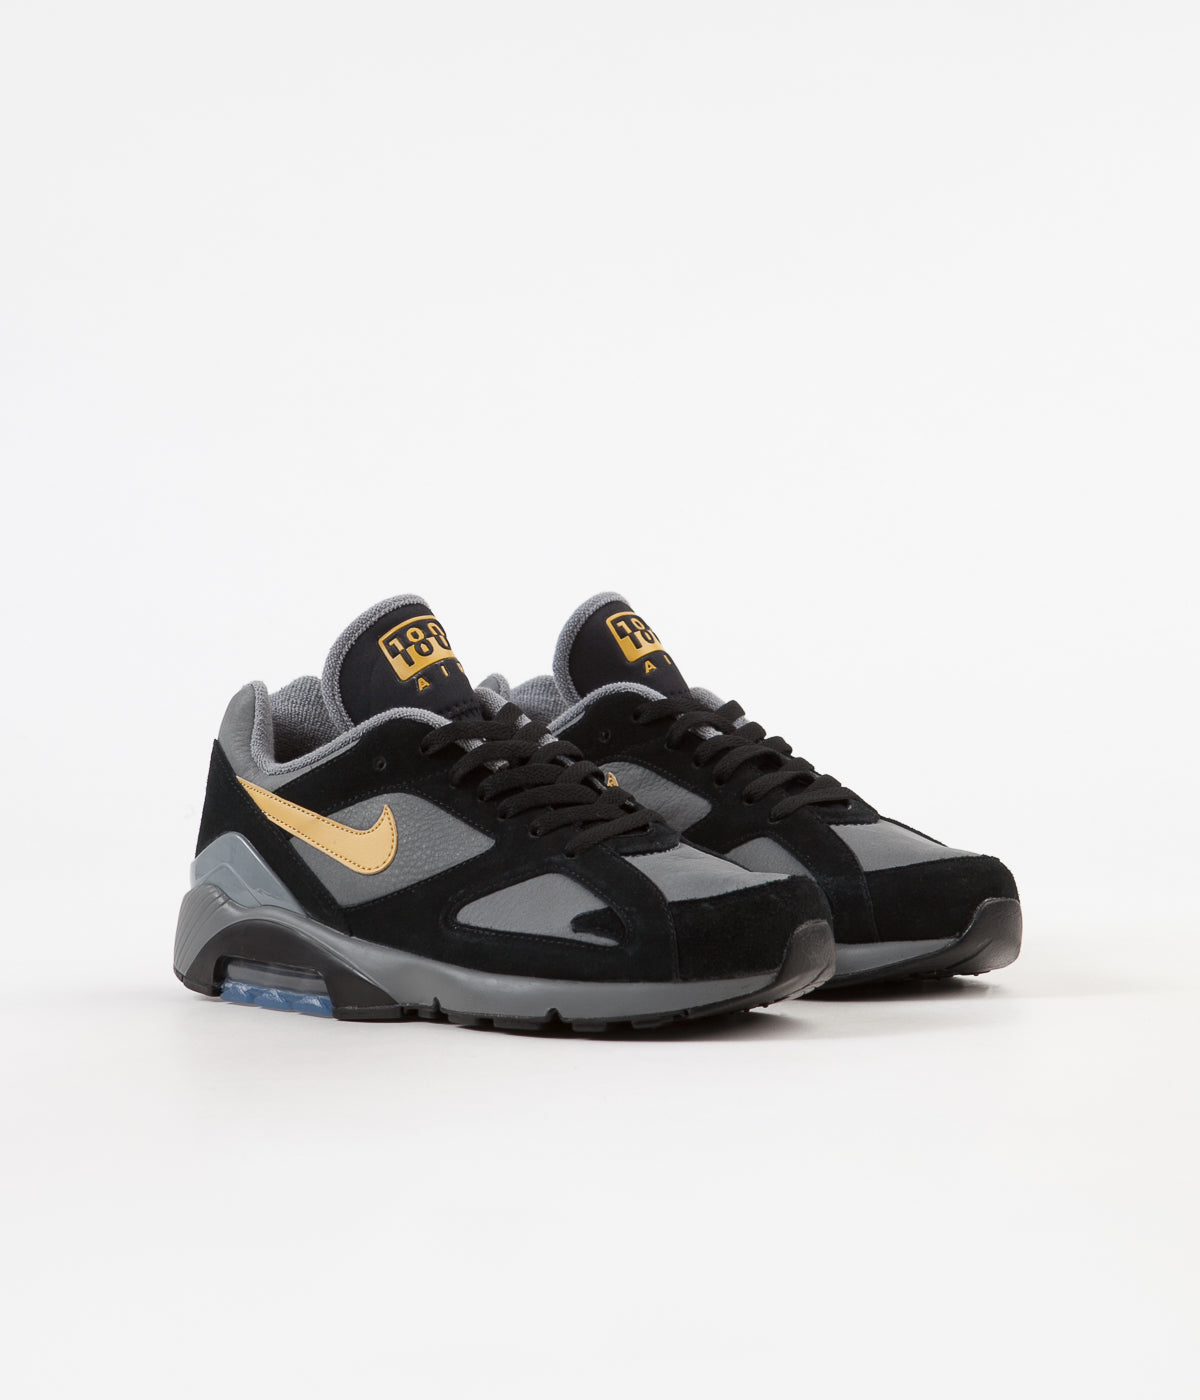 Nike Air Max 180 Shoes Cool Grey Wheat Gold Black